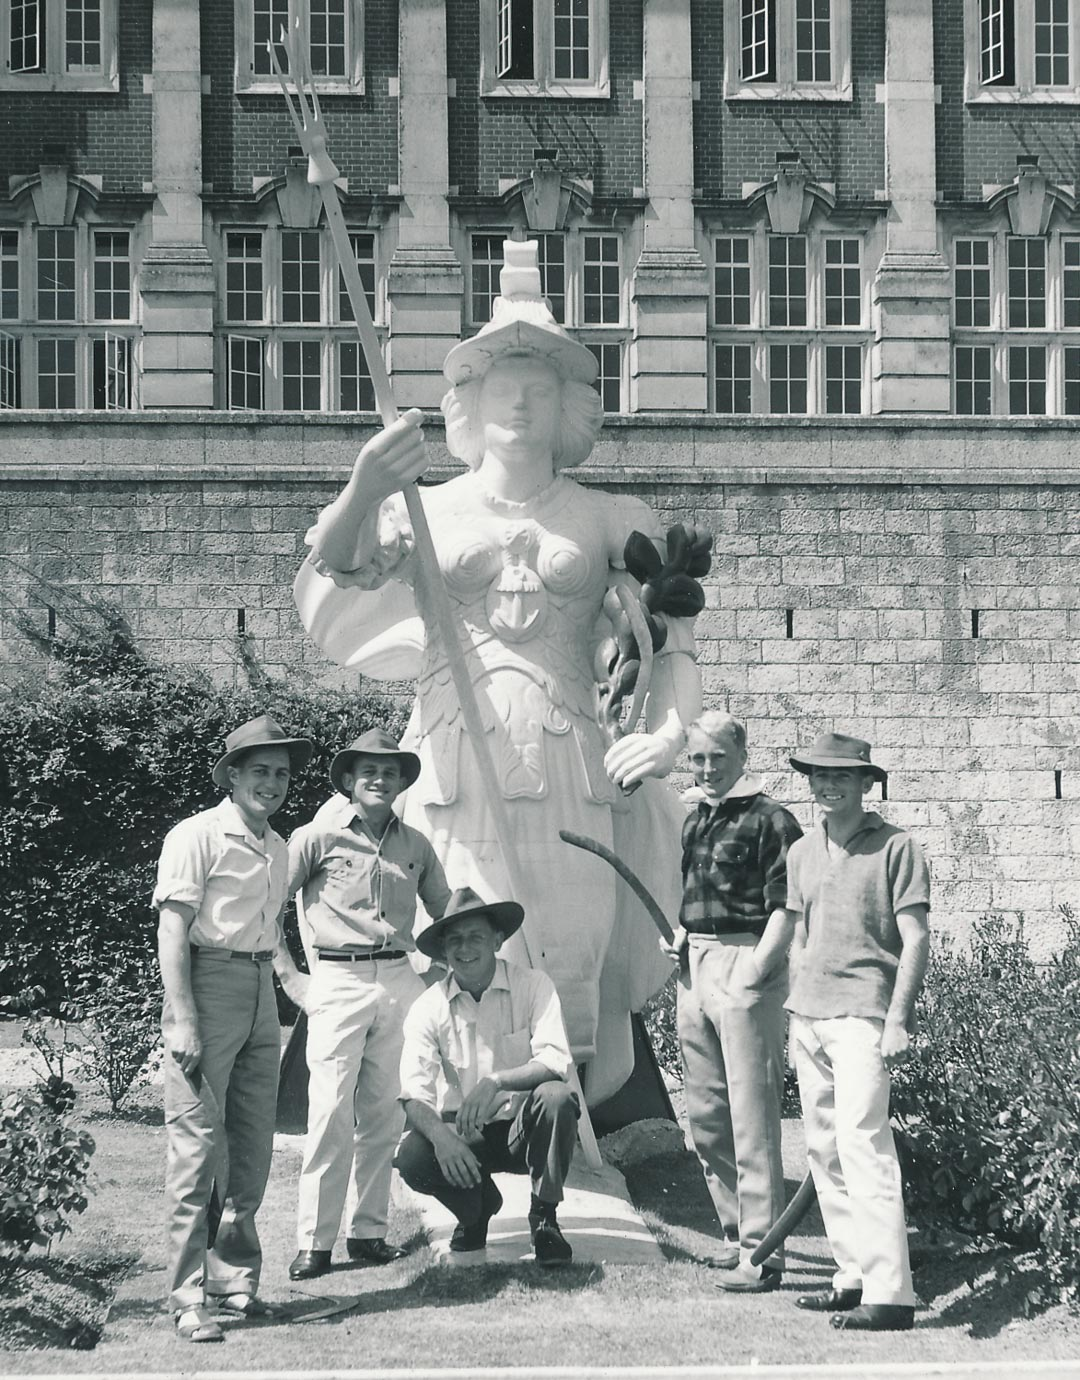 Left to right are John Davies, Tony Howland and Alex Bate.  Bruce is holding his boomerang in front of the figure of Britannia.  On the far right may be Don Chalmers.  Britannia Royal Naval College, Dartmouth, UK.  Information credit Ian Pfennigwerth